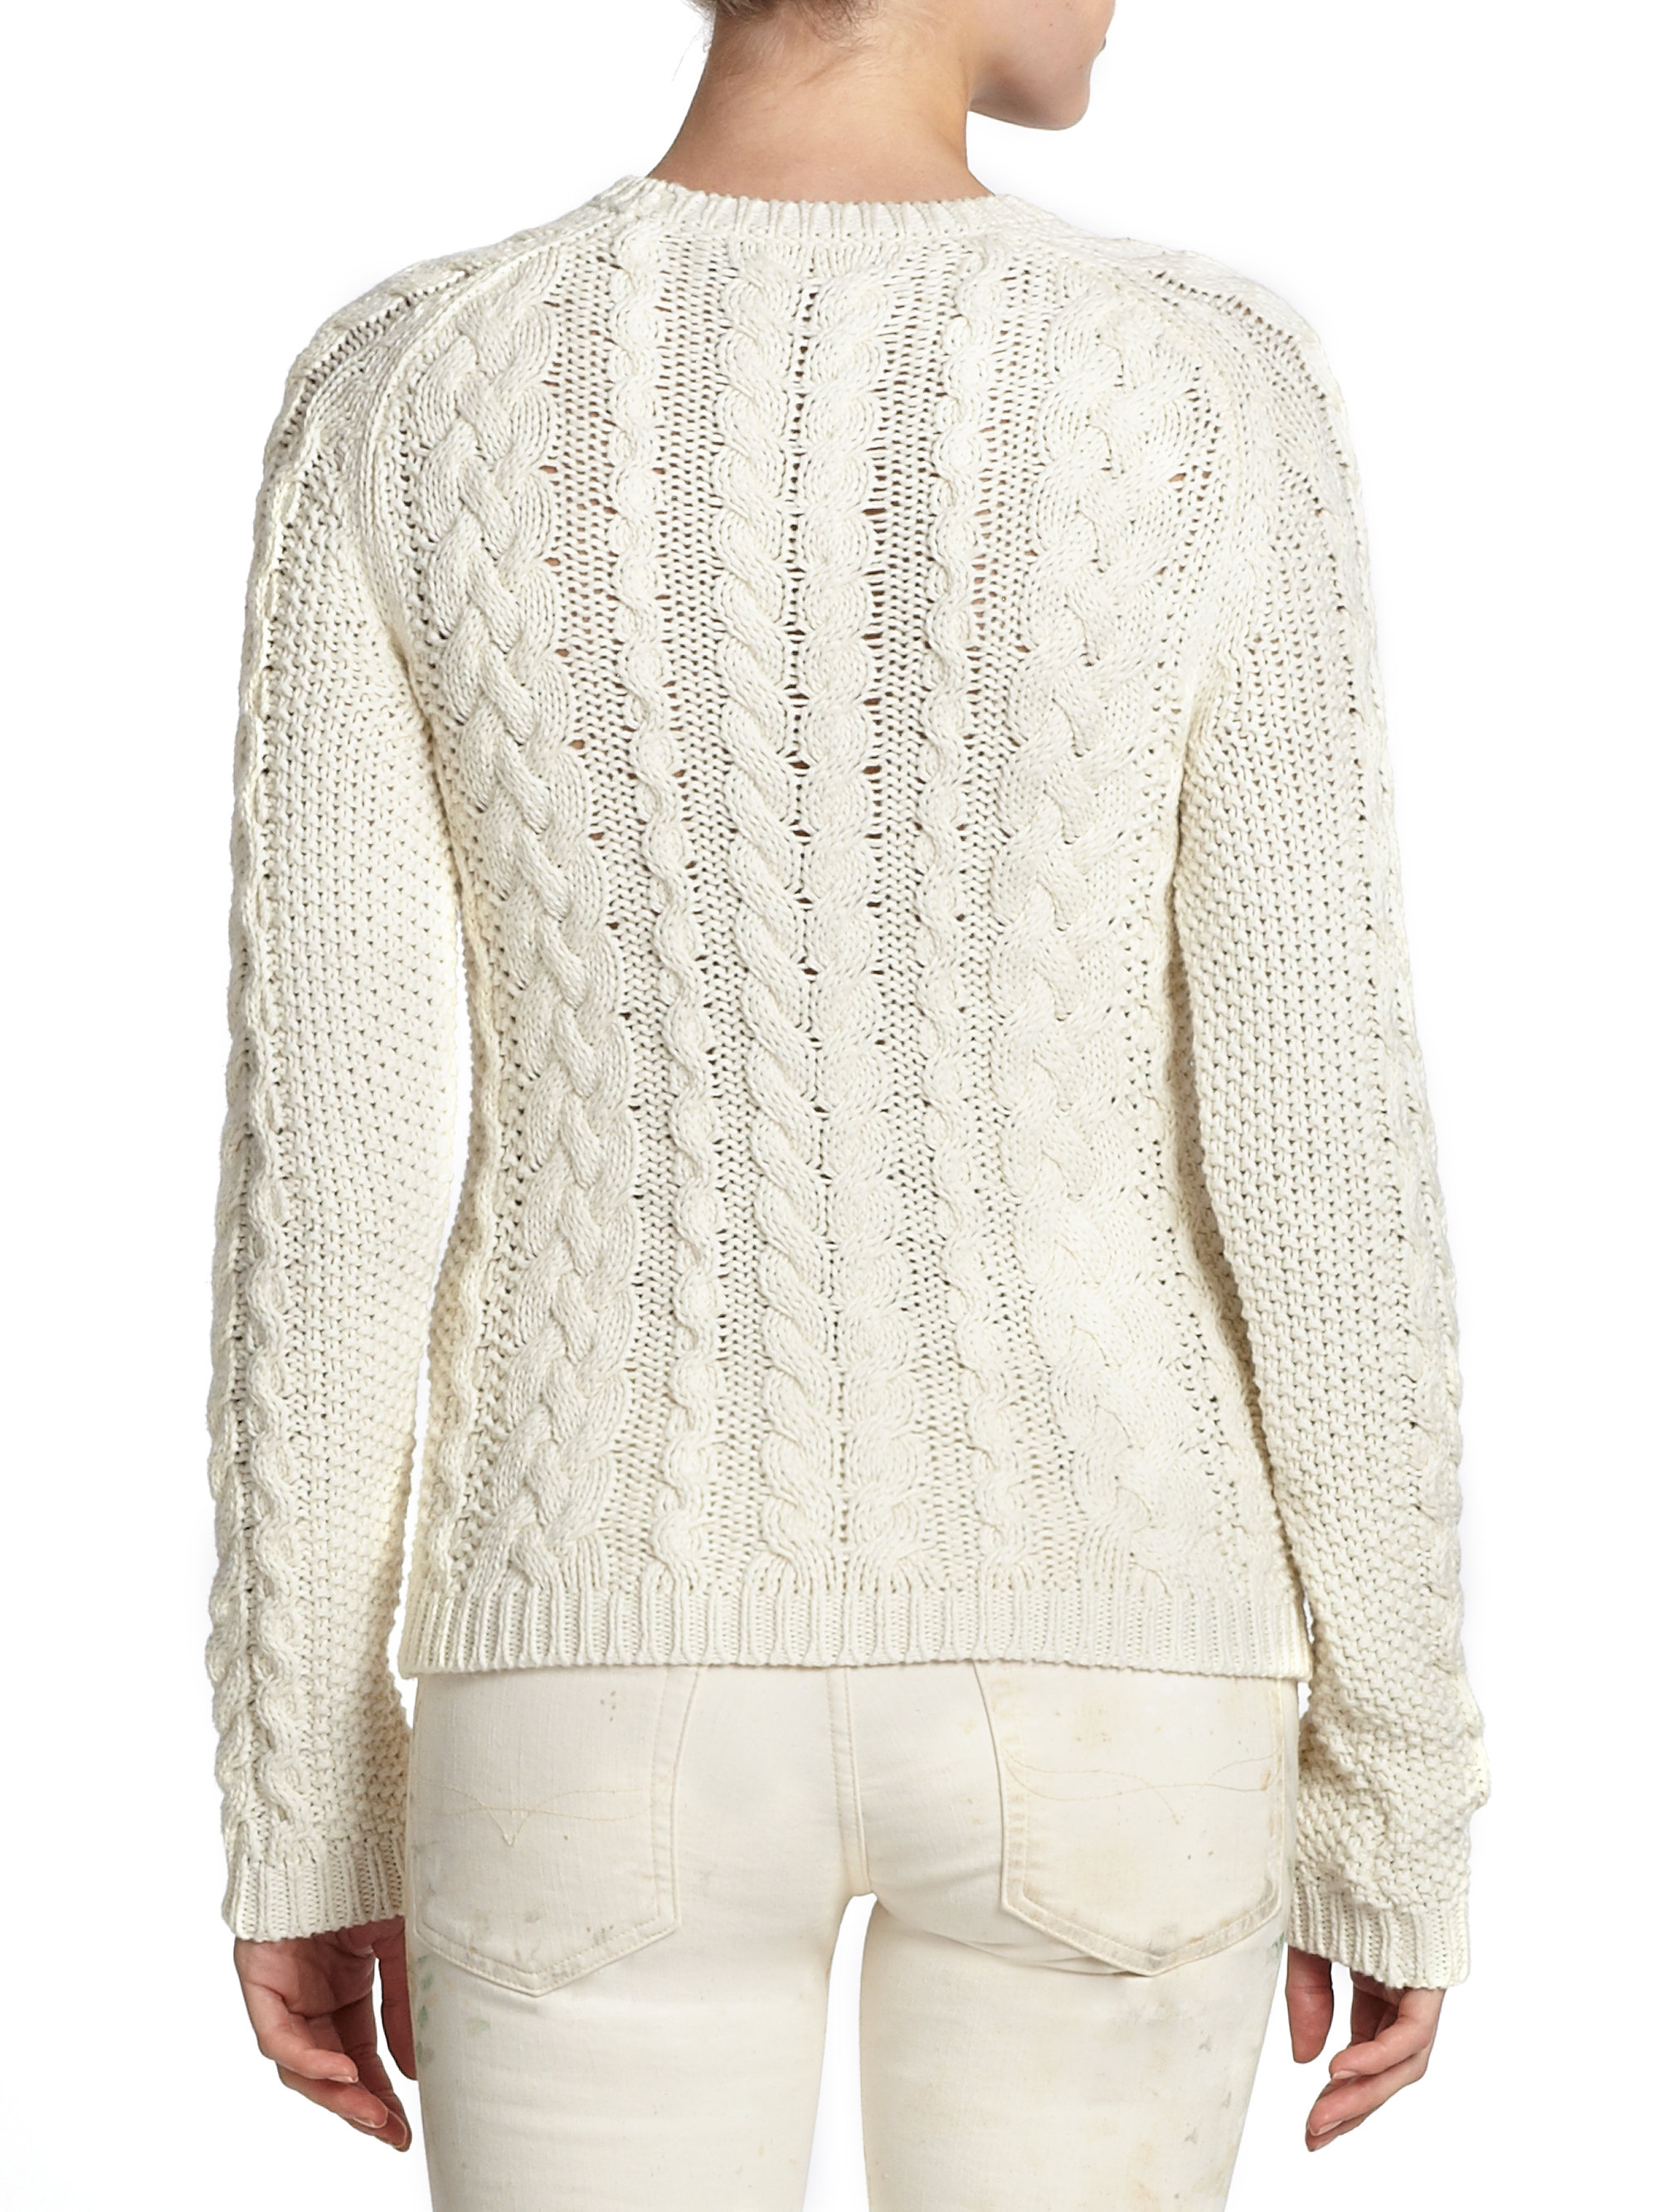 6b681c62b849 Lyst - Polo Ralph Lauren Cotton Cable-Knit Sweater in Natural